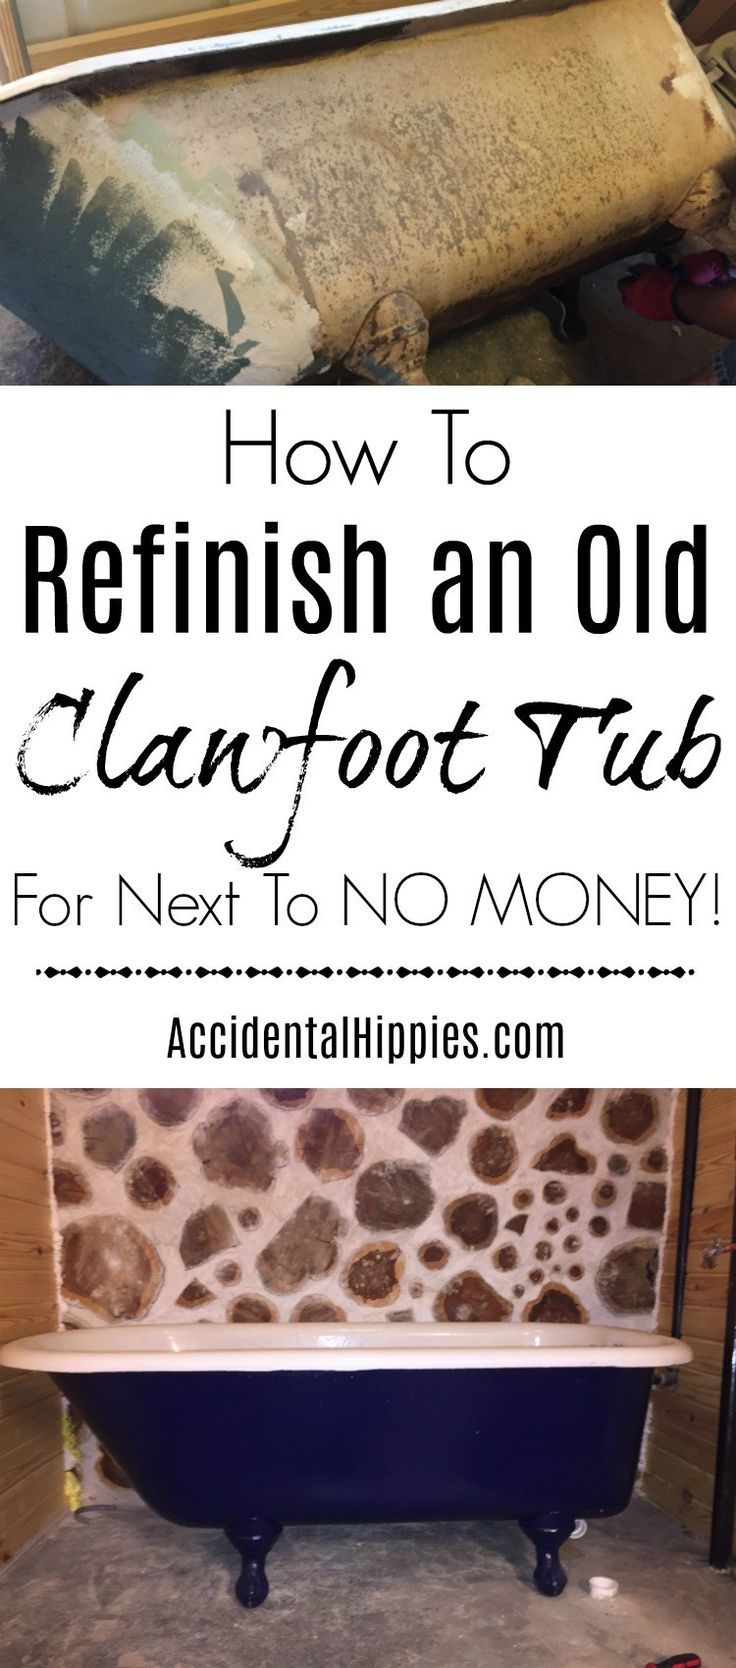 How to Find and Refinish an Old Cast Iron Clawfoot Tub | Pinterest ...